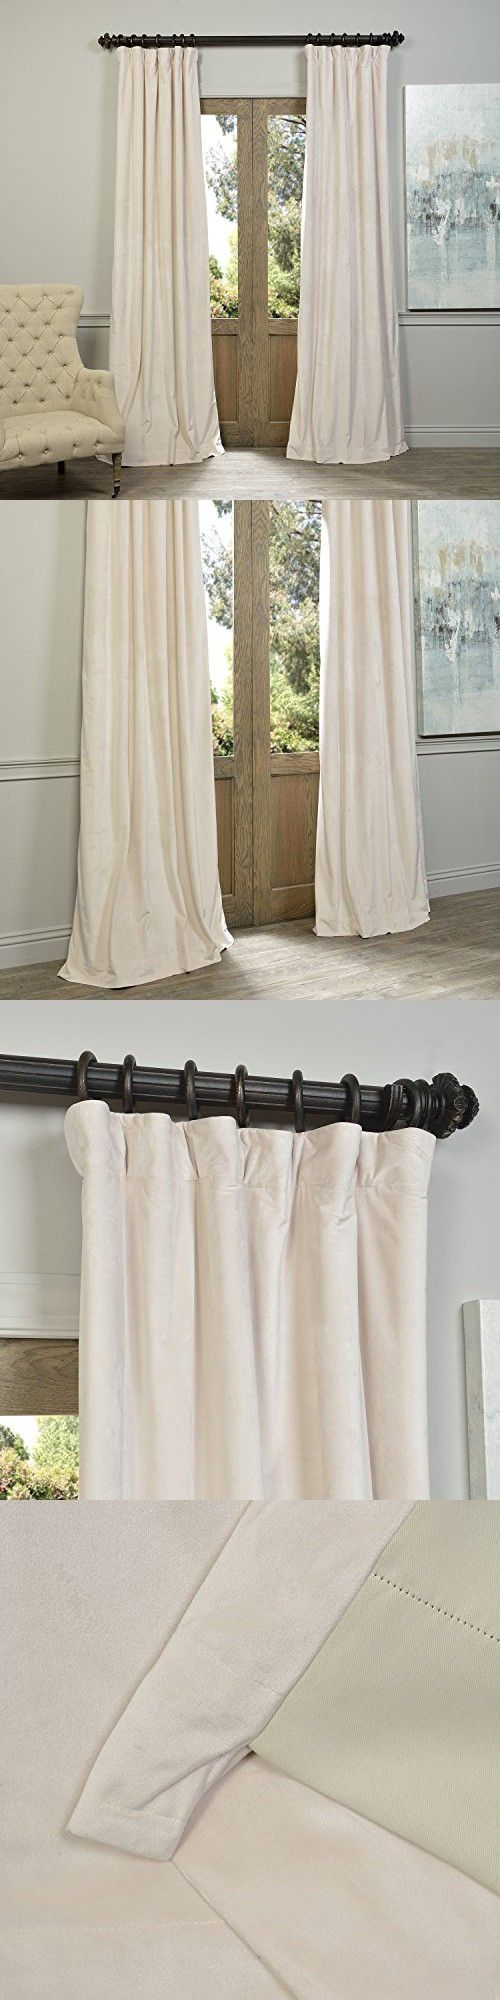 120 W X 96 L Set Of 2 Panels Pinch Pleat 90 Beige Lining Blackout Velvet Solid Curtain Thermal Insulated Patio Door Curtain Panel Drape For Traverse Rod An Panel Curtains